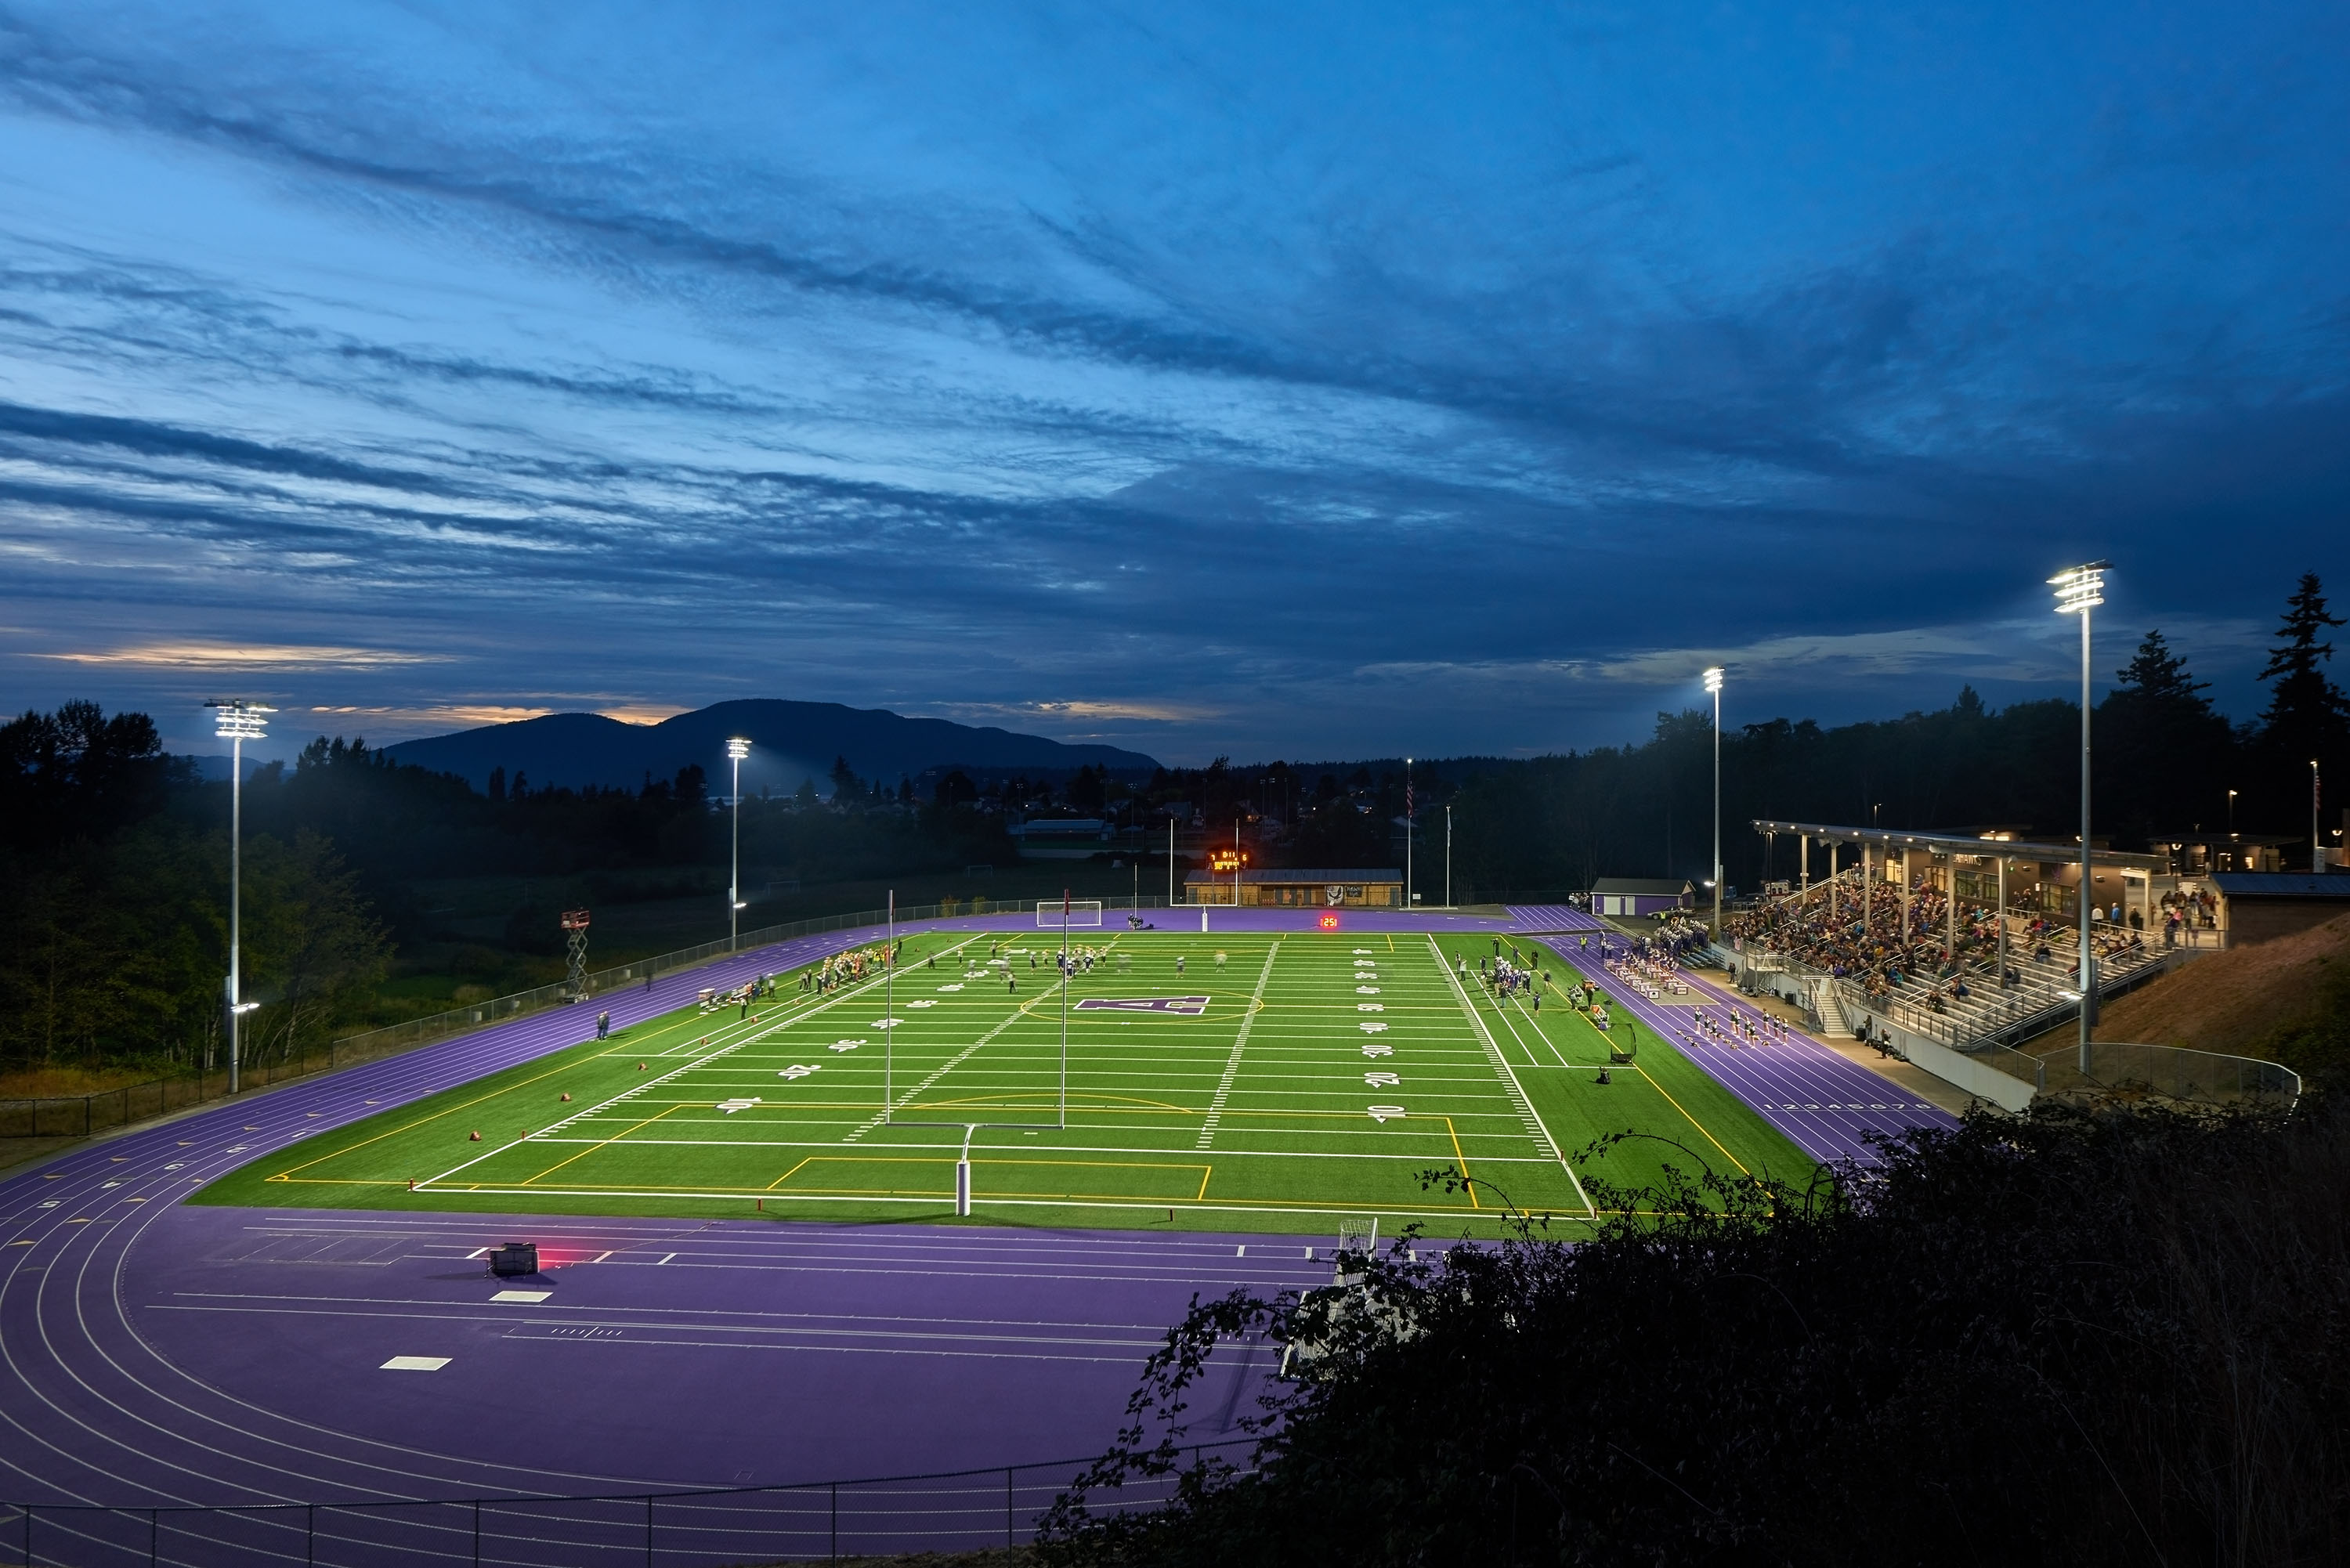 An overview photo of a football game with stadium lights lighting the field.